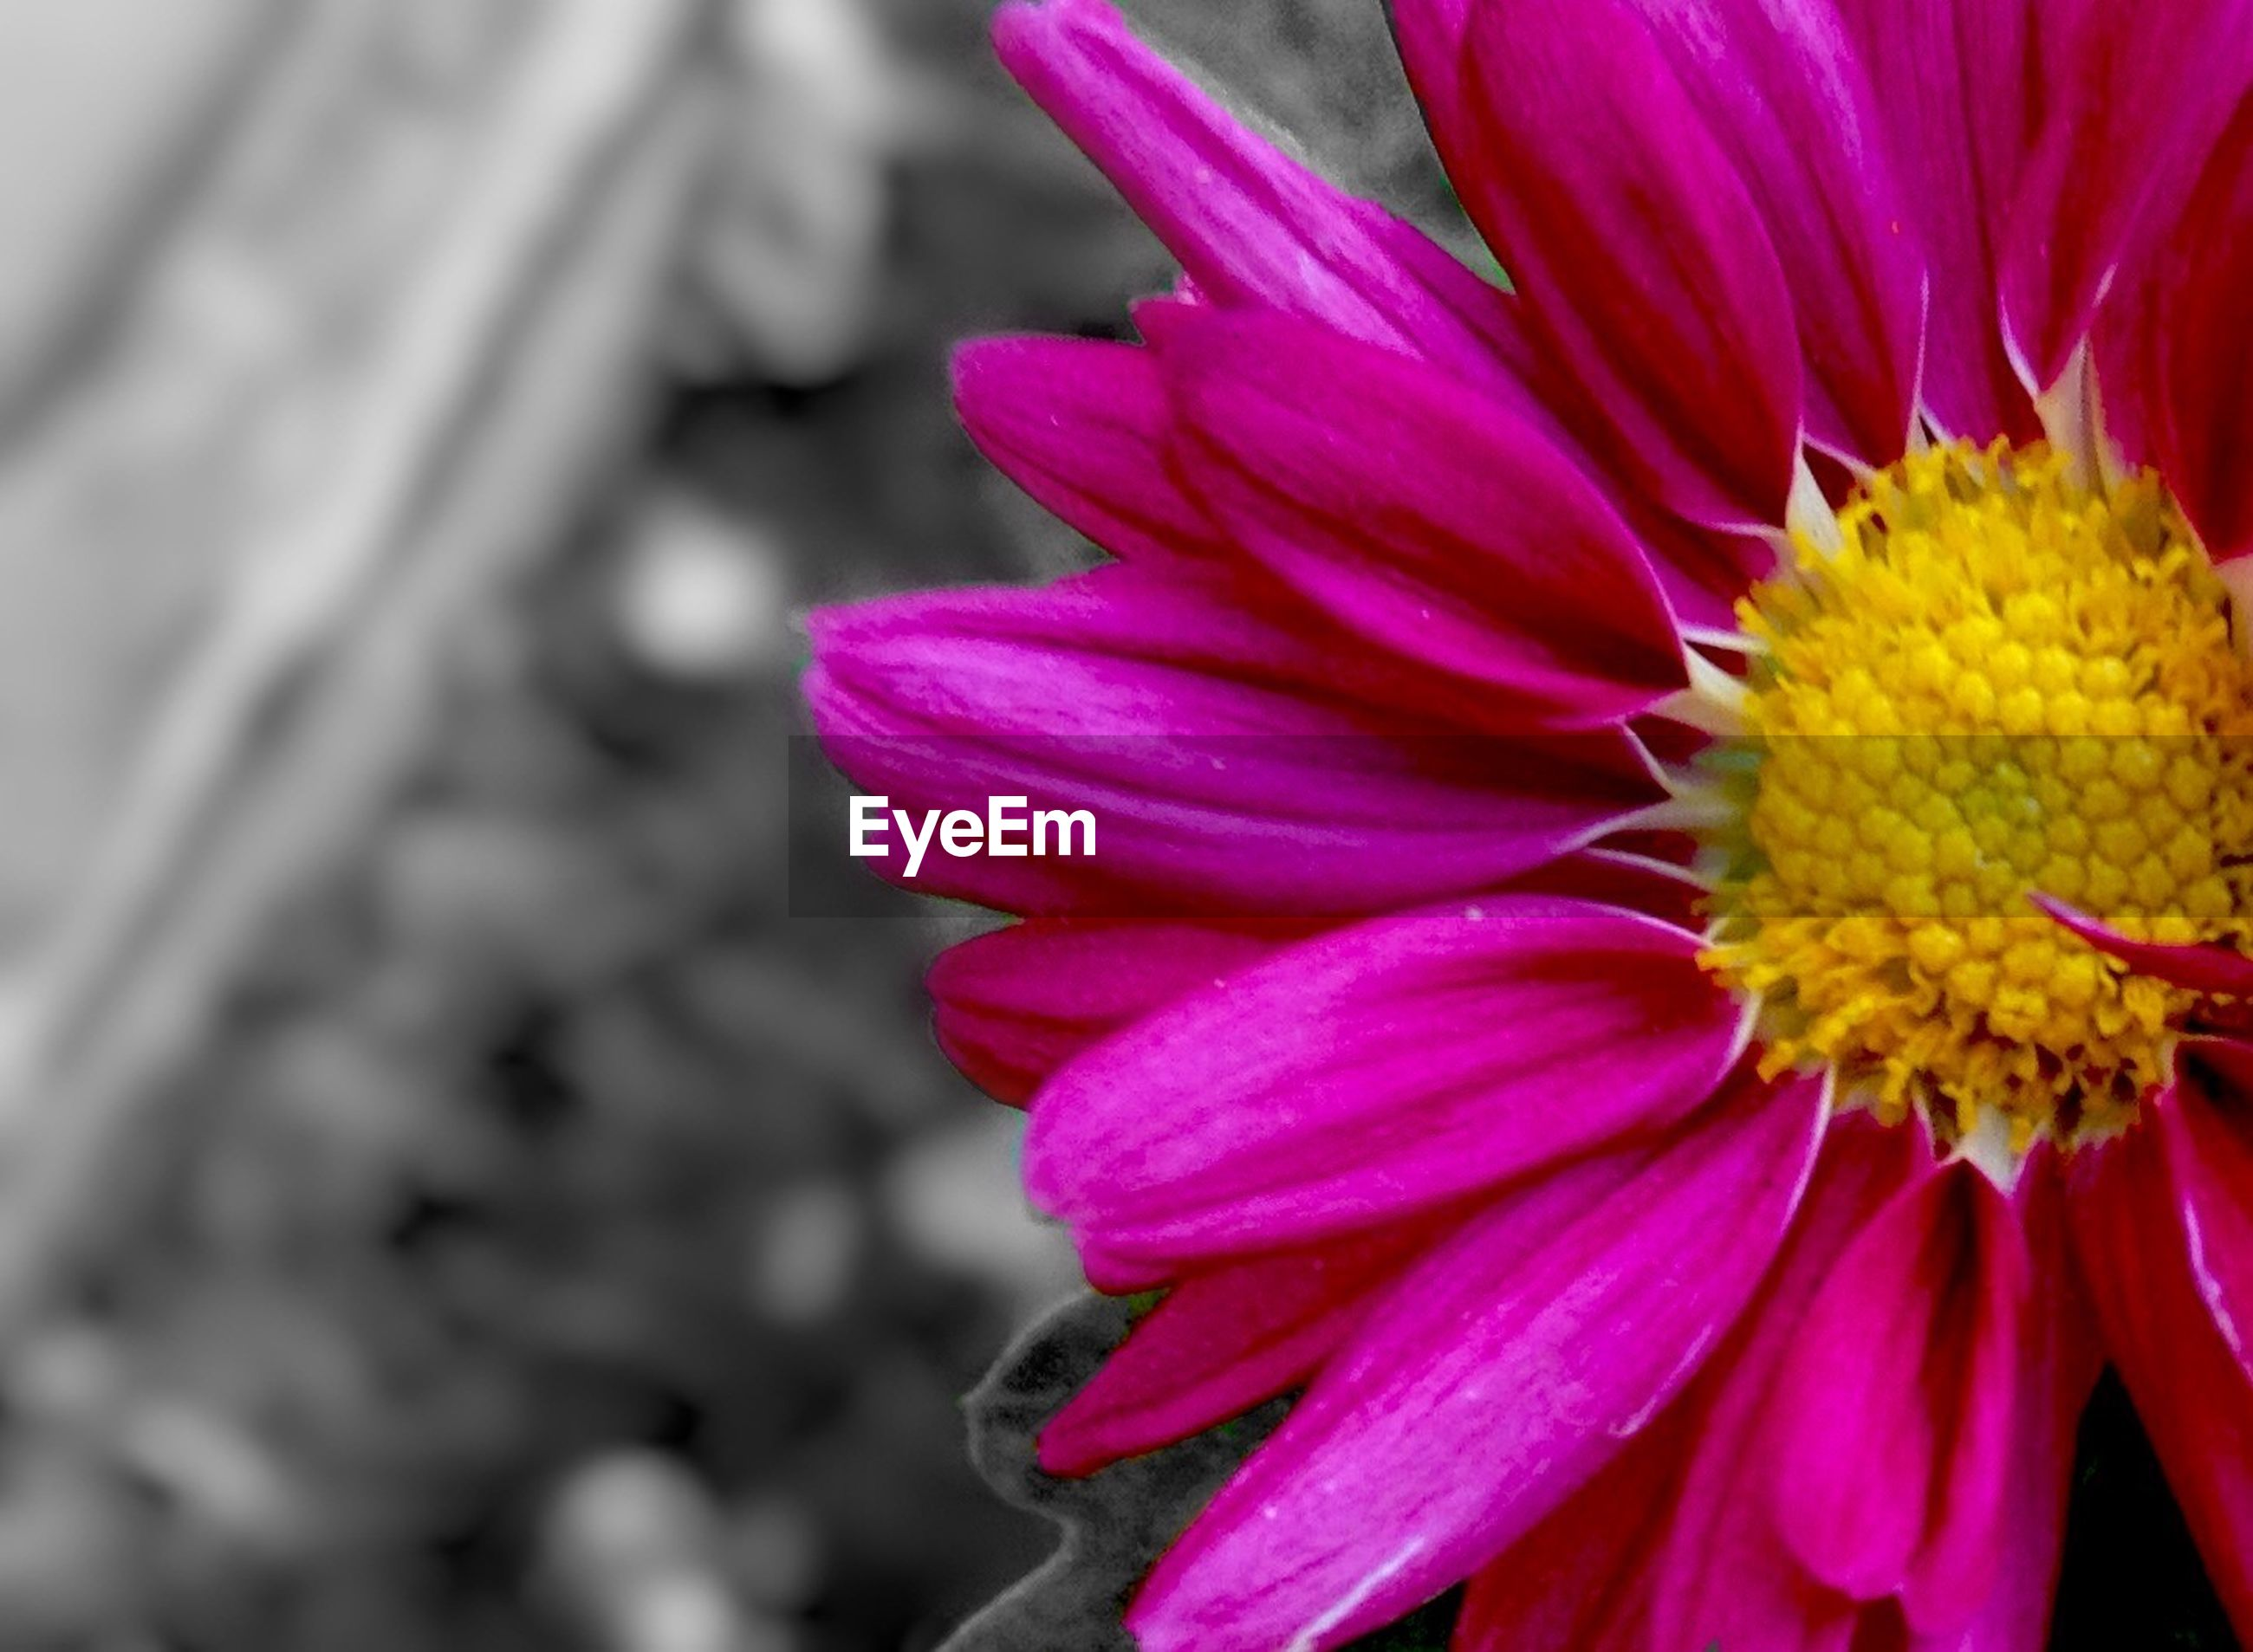 flower, petal, freshness, flower head, fragility, close-up, yellow, beauty in nature, growth, blooming, pink color, nature, purple, pollen, focus on foreground, selective focus, vibrant color, in bloom, no people, plant